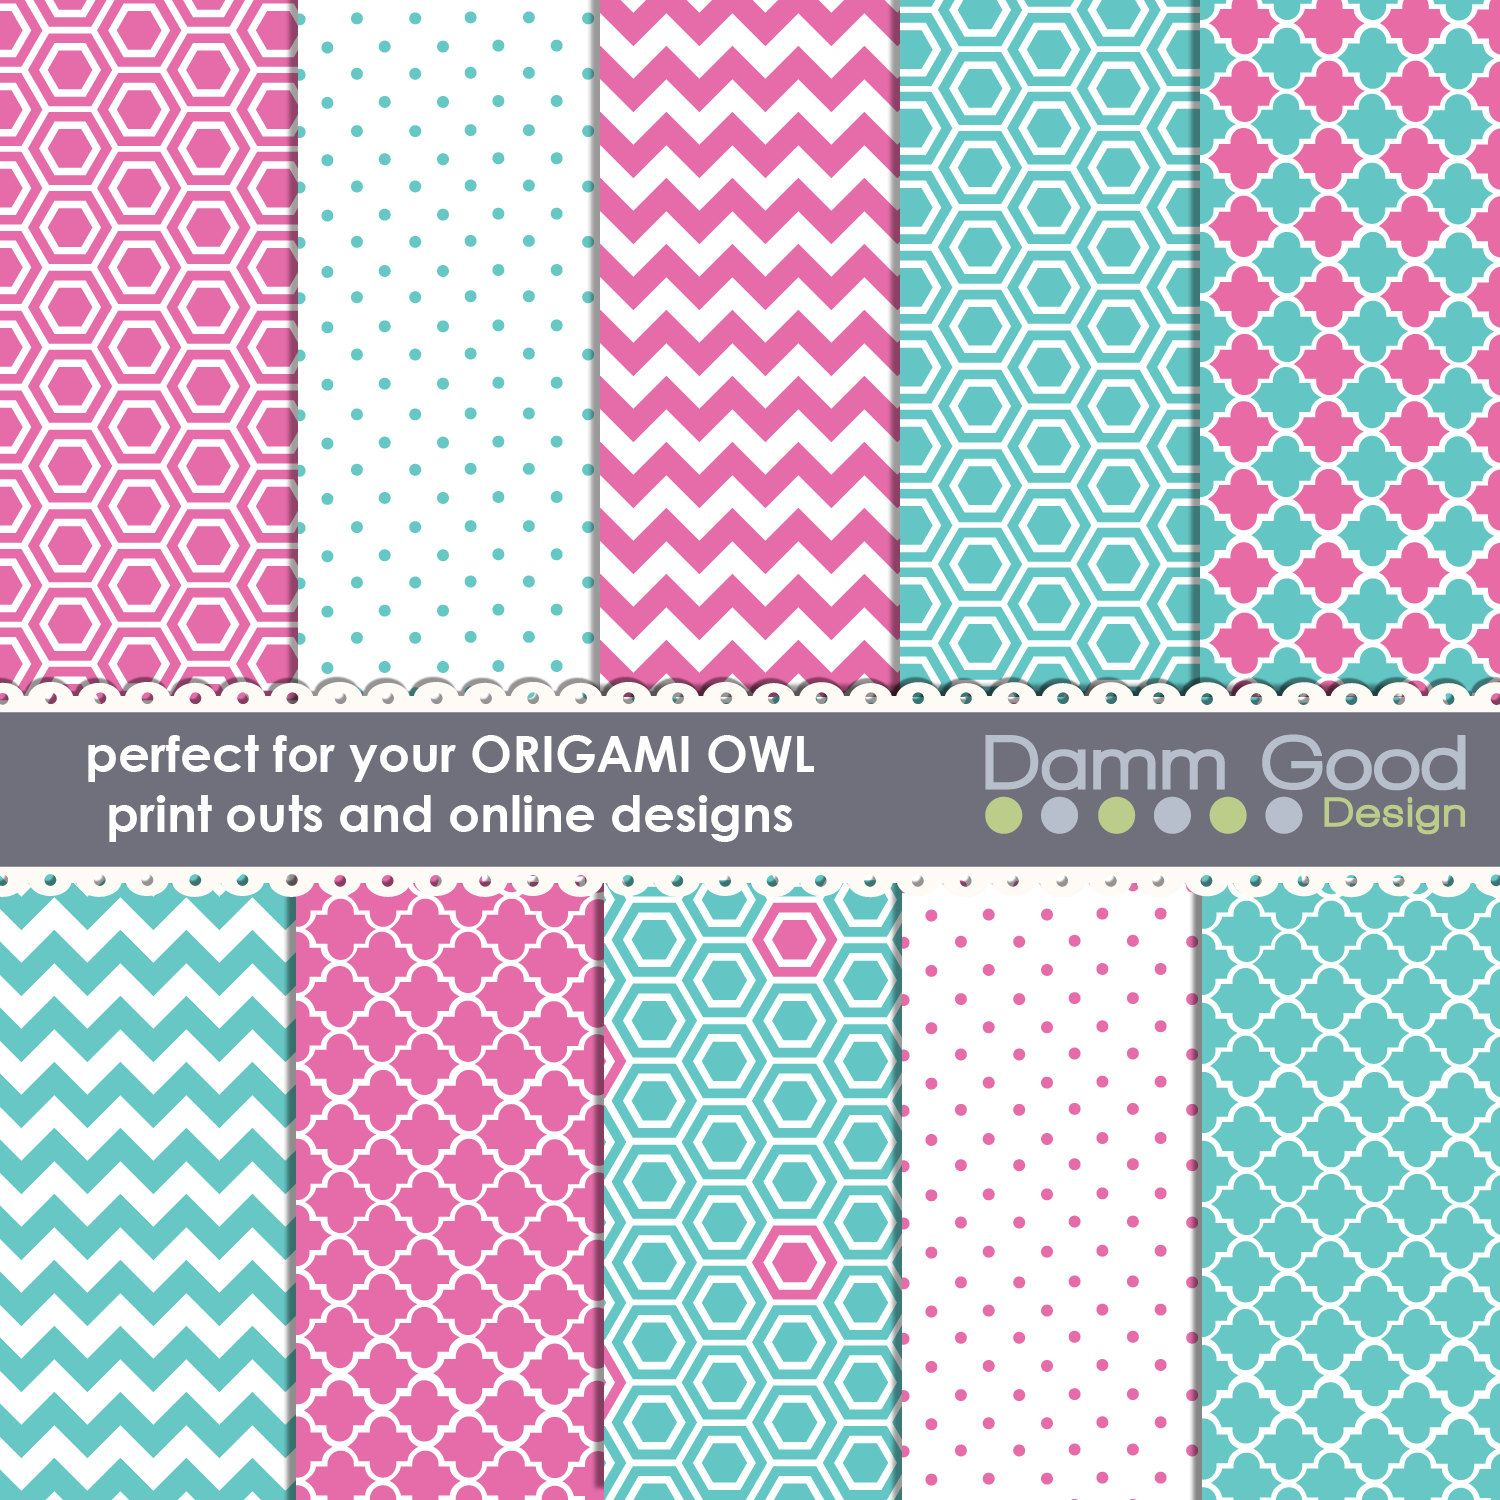 Digital papers origami owl backgrounds o2 backgrounds chevron digital papers origami owl backgrounds o2 backgrounds chevron quatrefoil hexigon polka dot 300 usd colourmoves